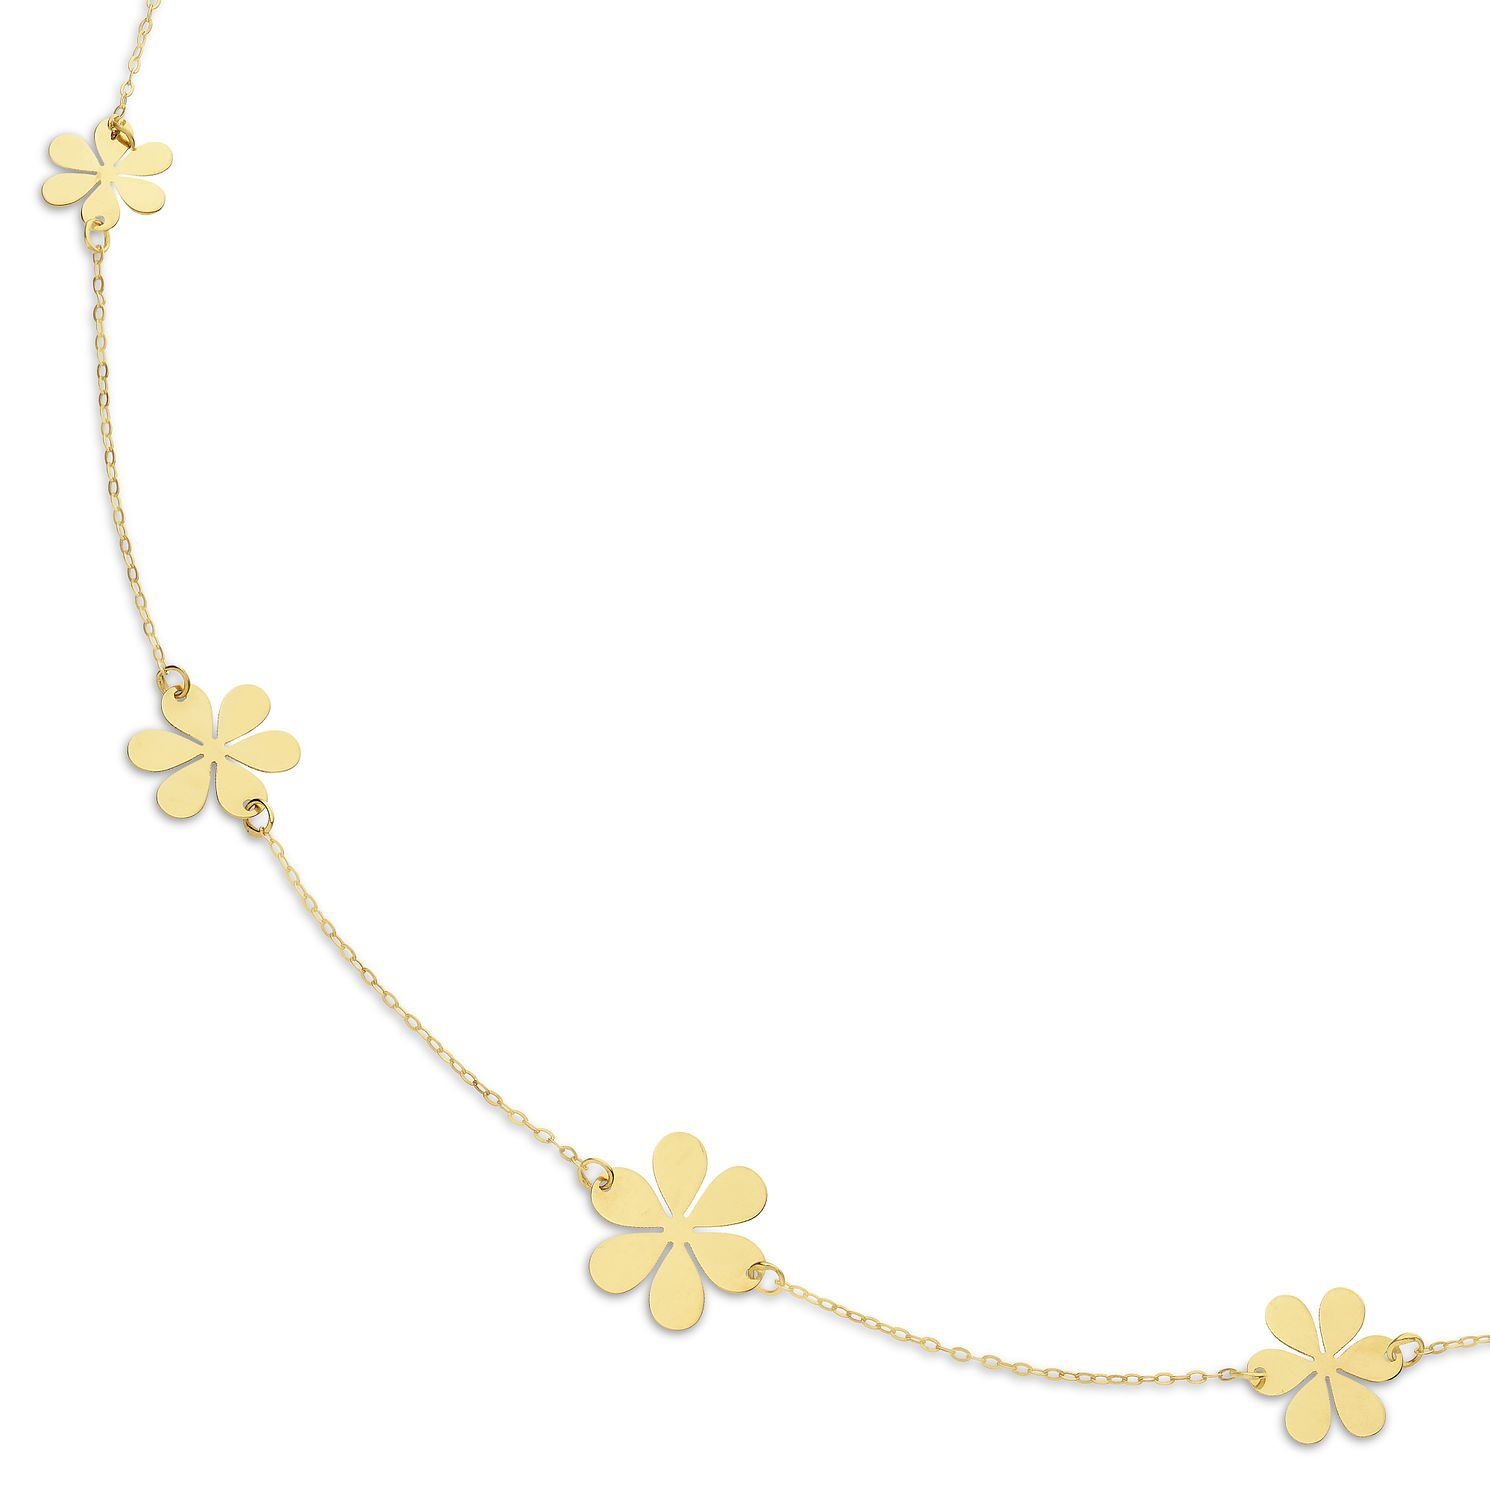 9ct Yellow Gold 5 Flower Necklace - Product number 9743065